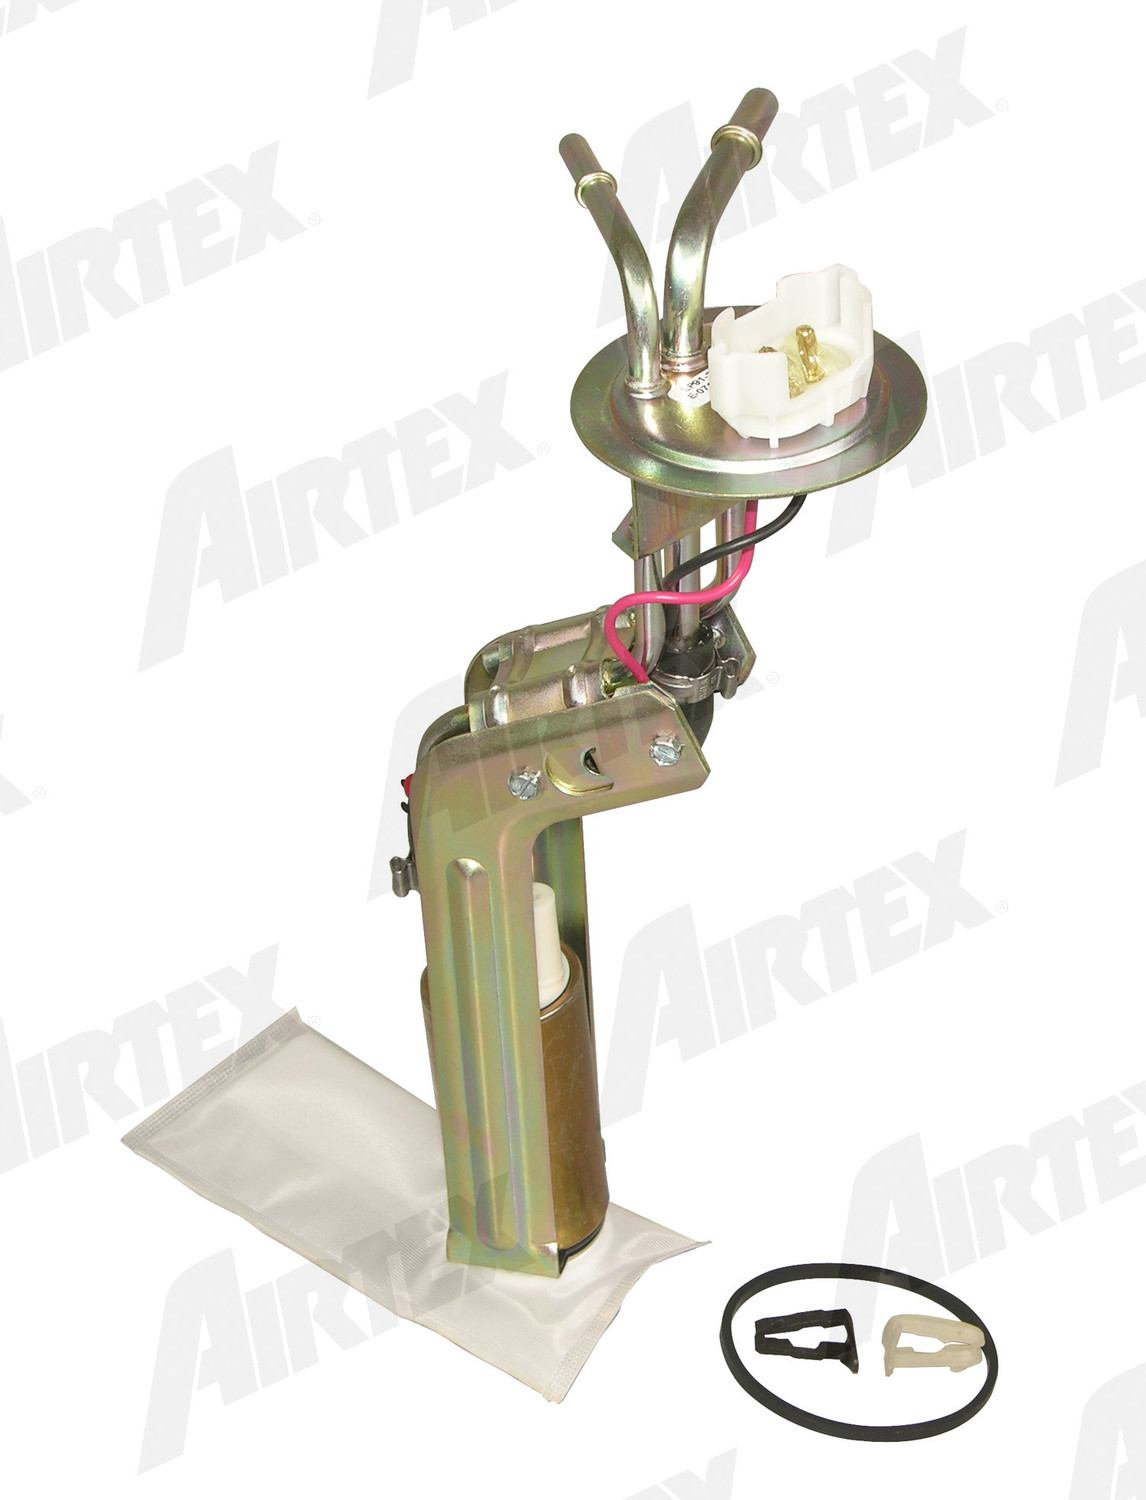 AIRTEX AUTOMOTIVE DIVISION - Fuel Pump Hanger Assembly - ATN E2110H